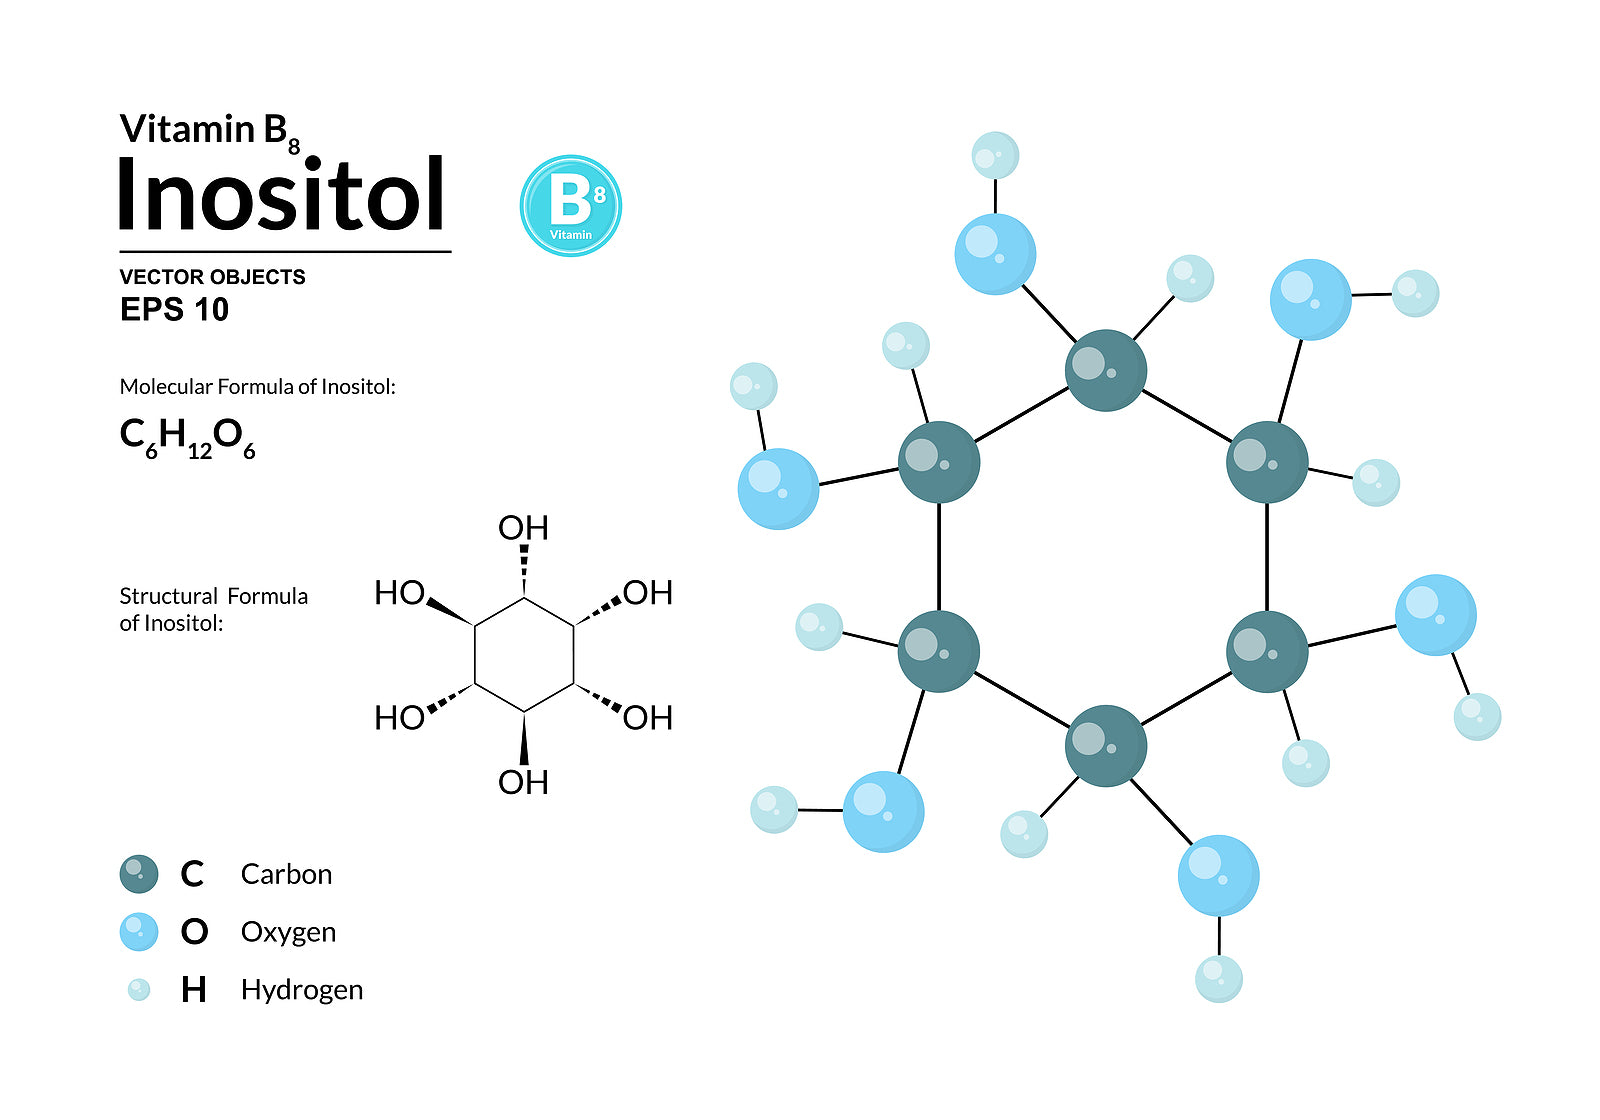 The chemical molecular formula for Inositol (Vitamin B8)